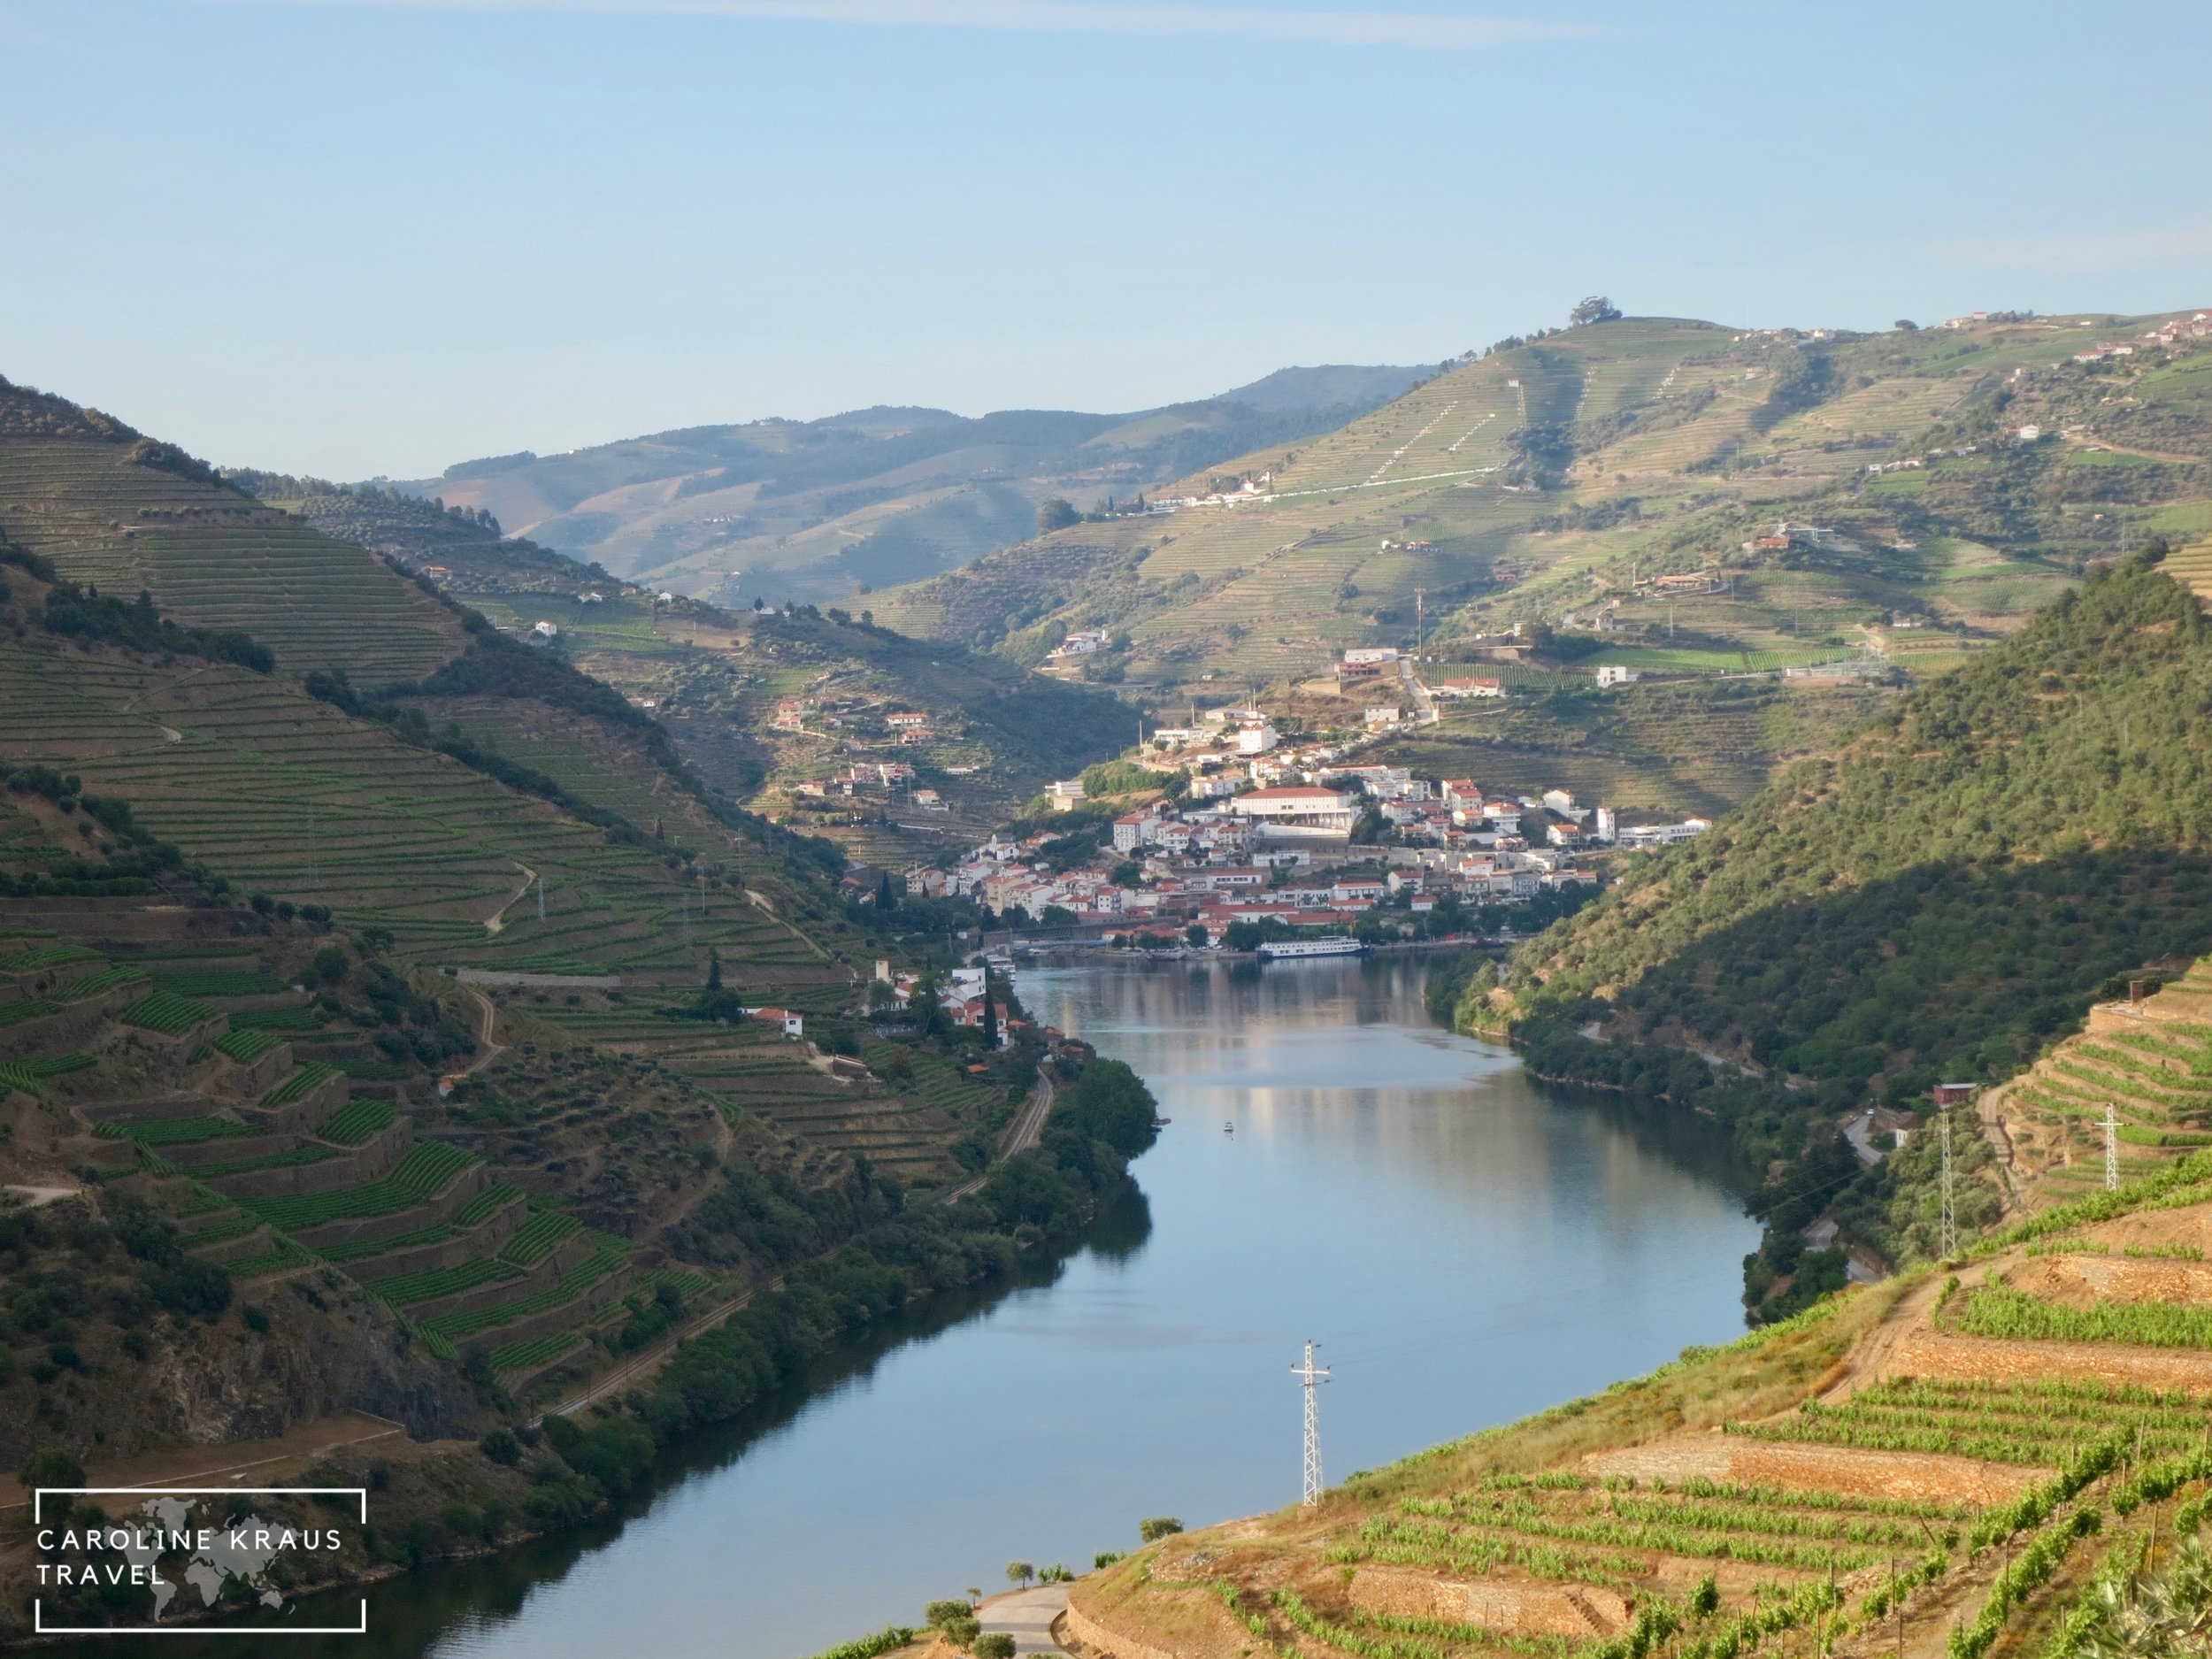 Town of Pinhao in the Douro Valley, Portugal